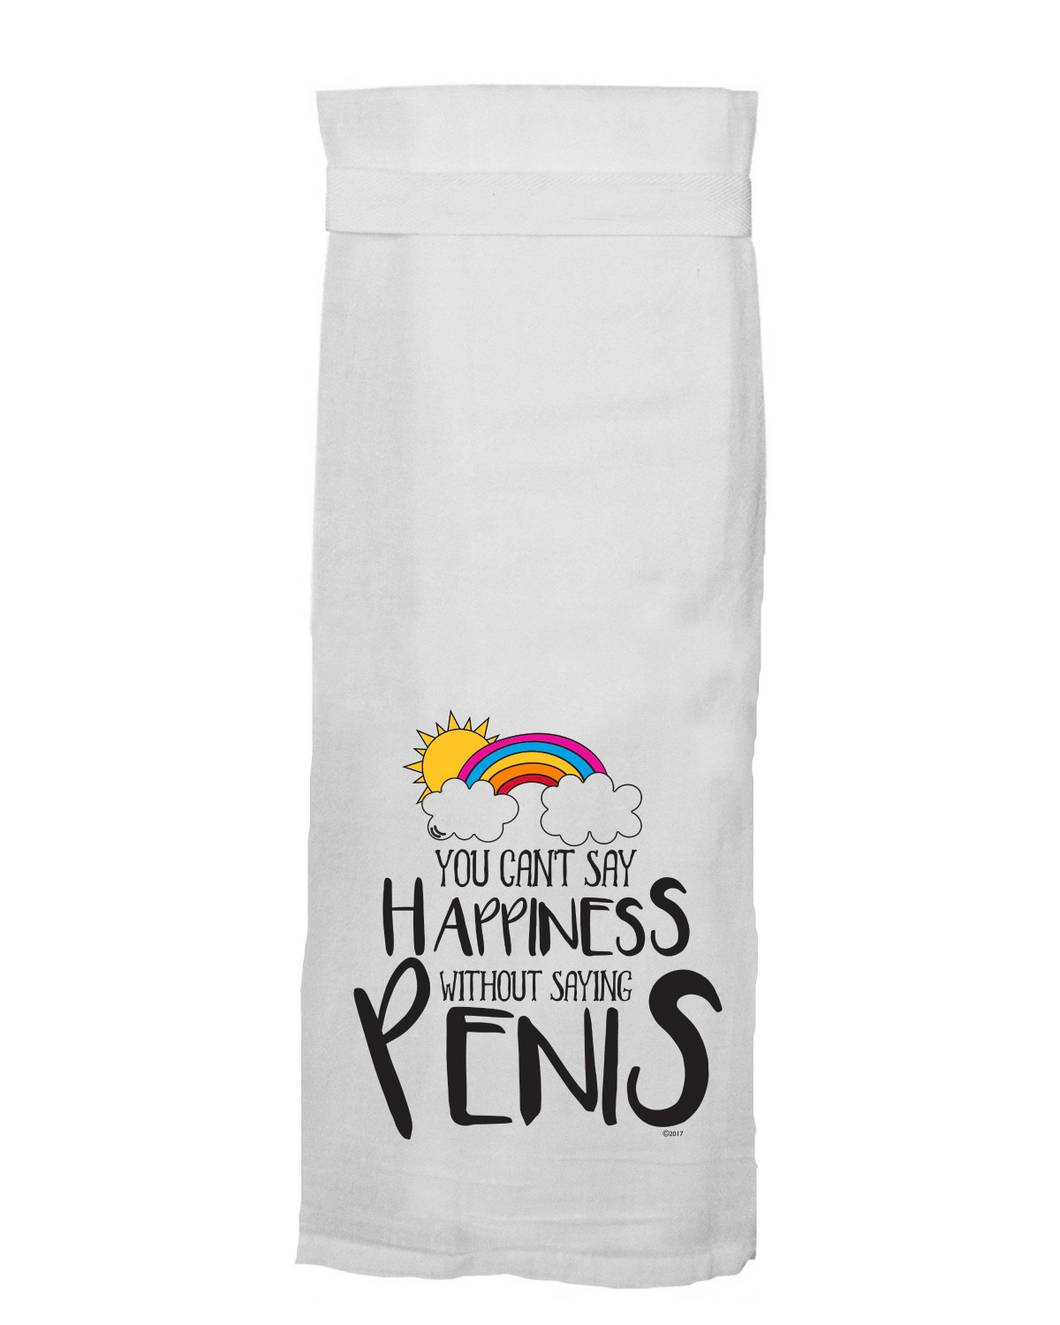 You Can't Say Happiness Without Penis Dish Towel